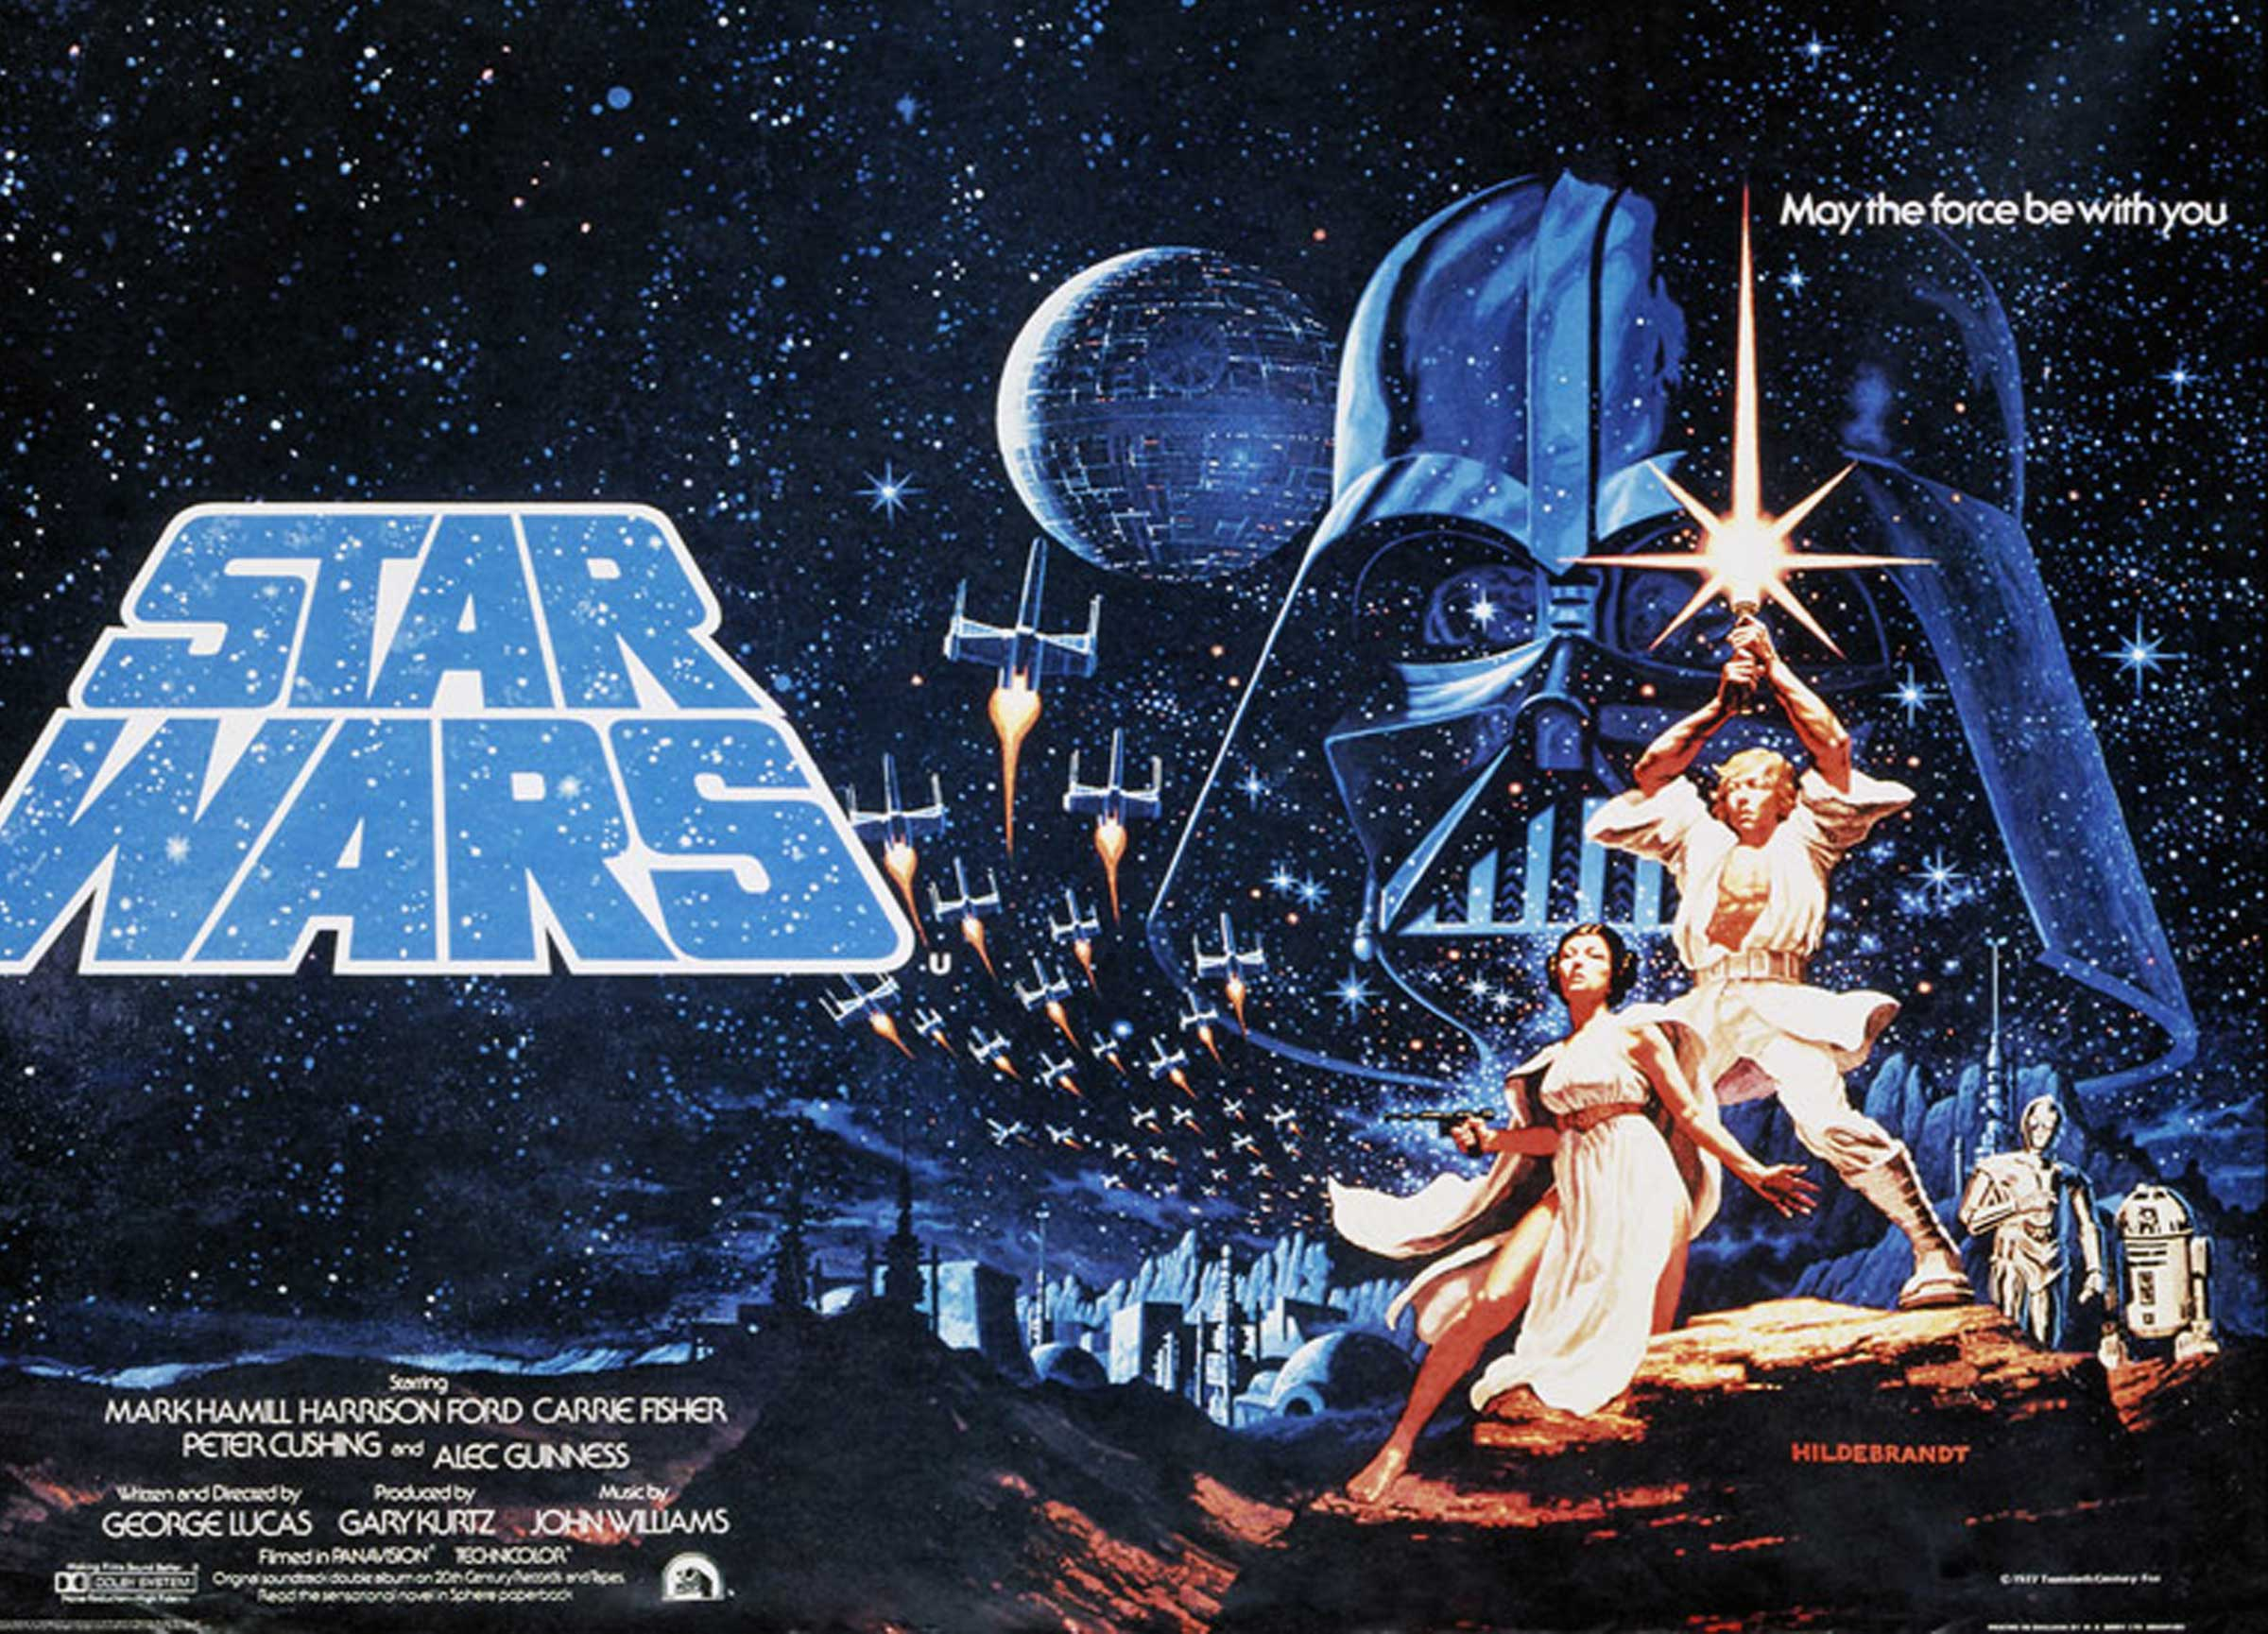 star-wars-movie-poster-1977-original.jpg